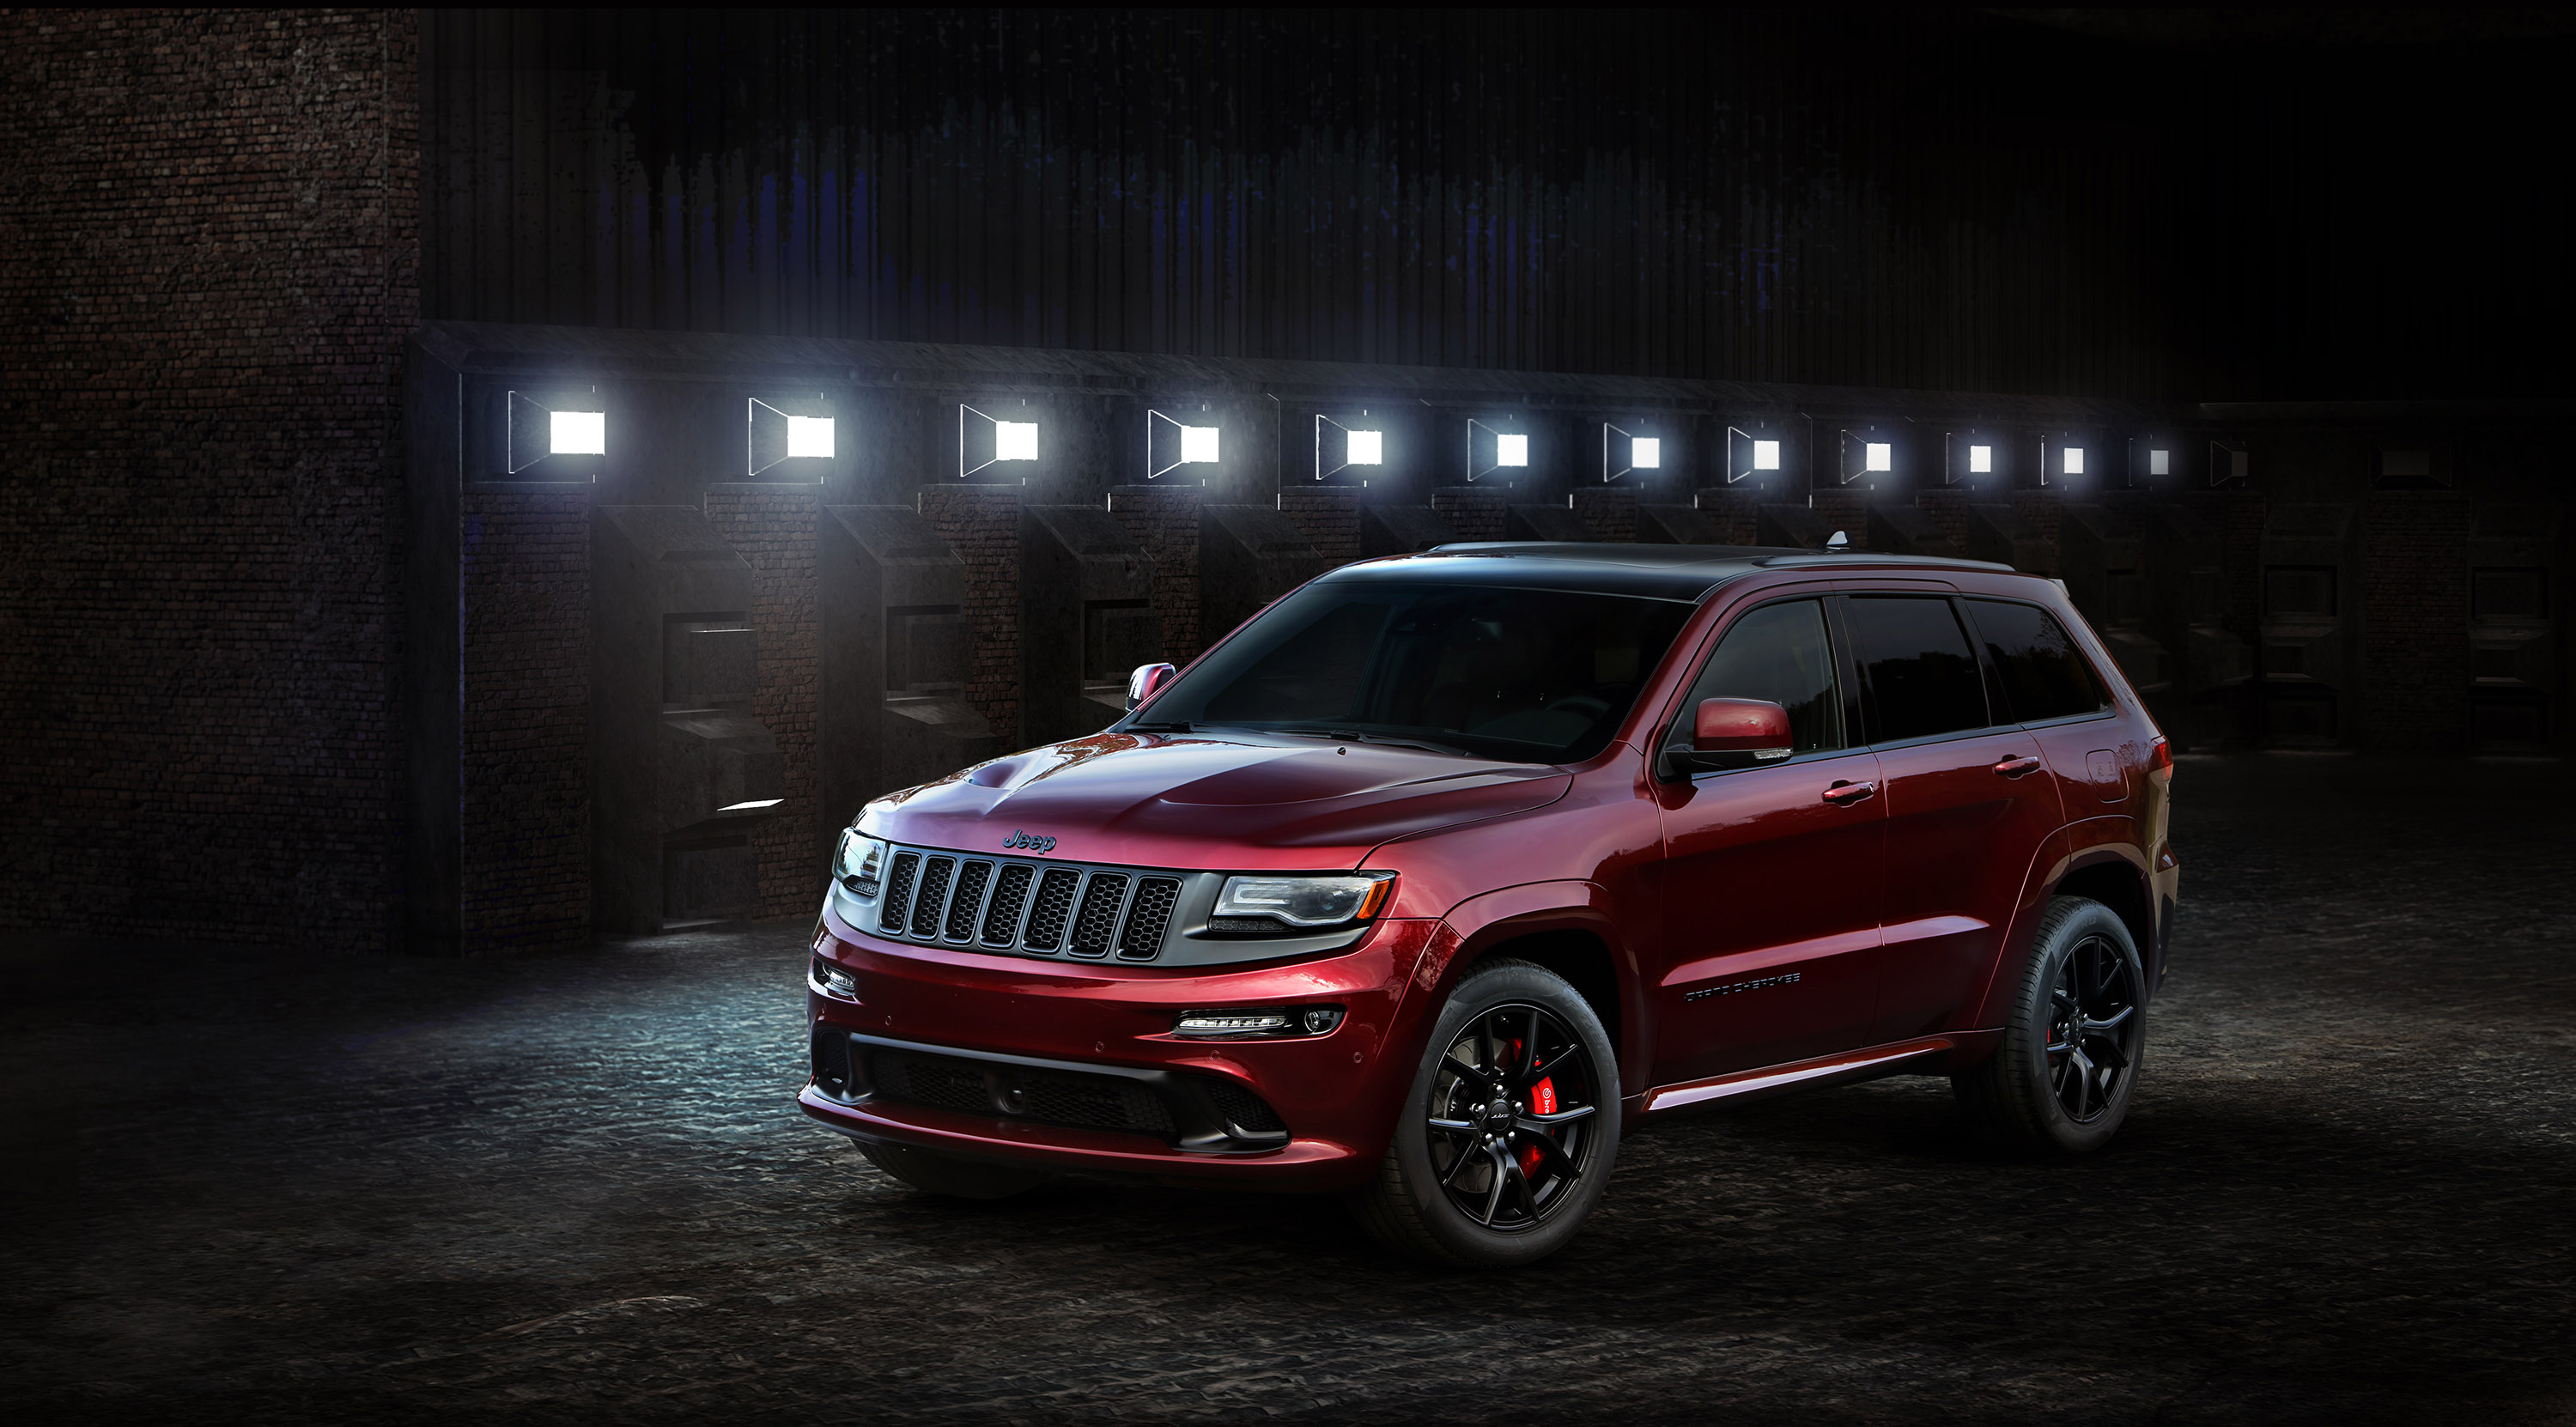 jeep wrangler backcountry grand cherokee srt night are main stars in l a. Black Bedroom Furniture Sets. Home Design Ideas